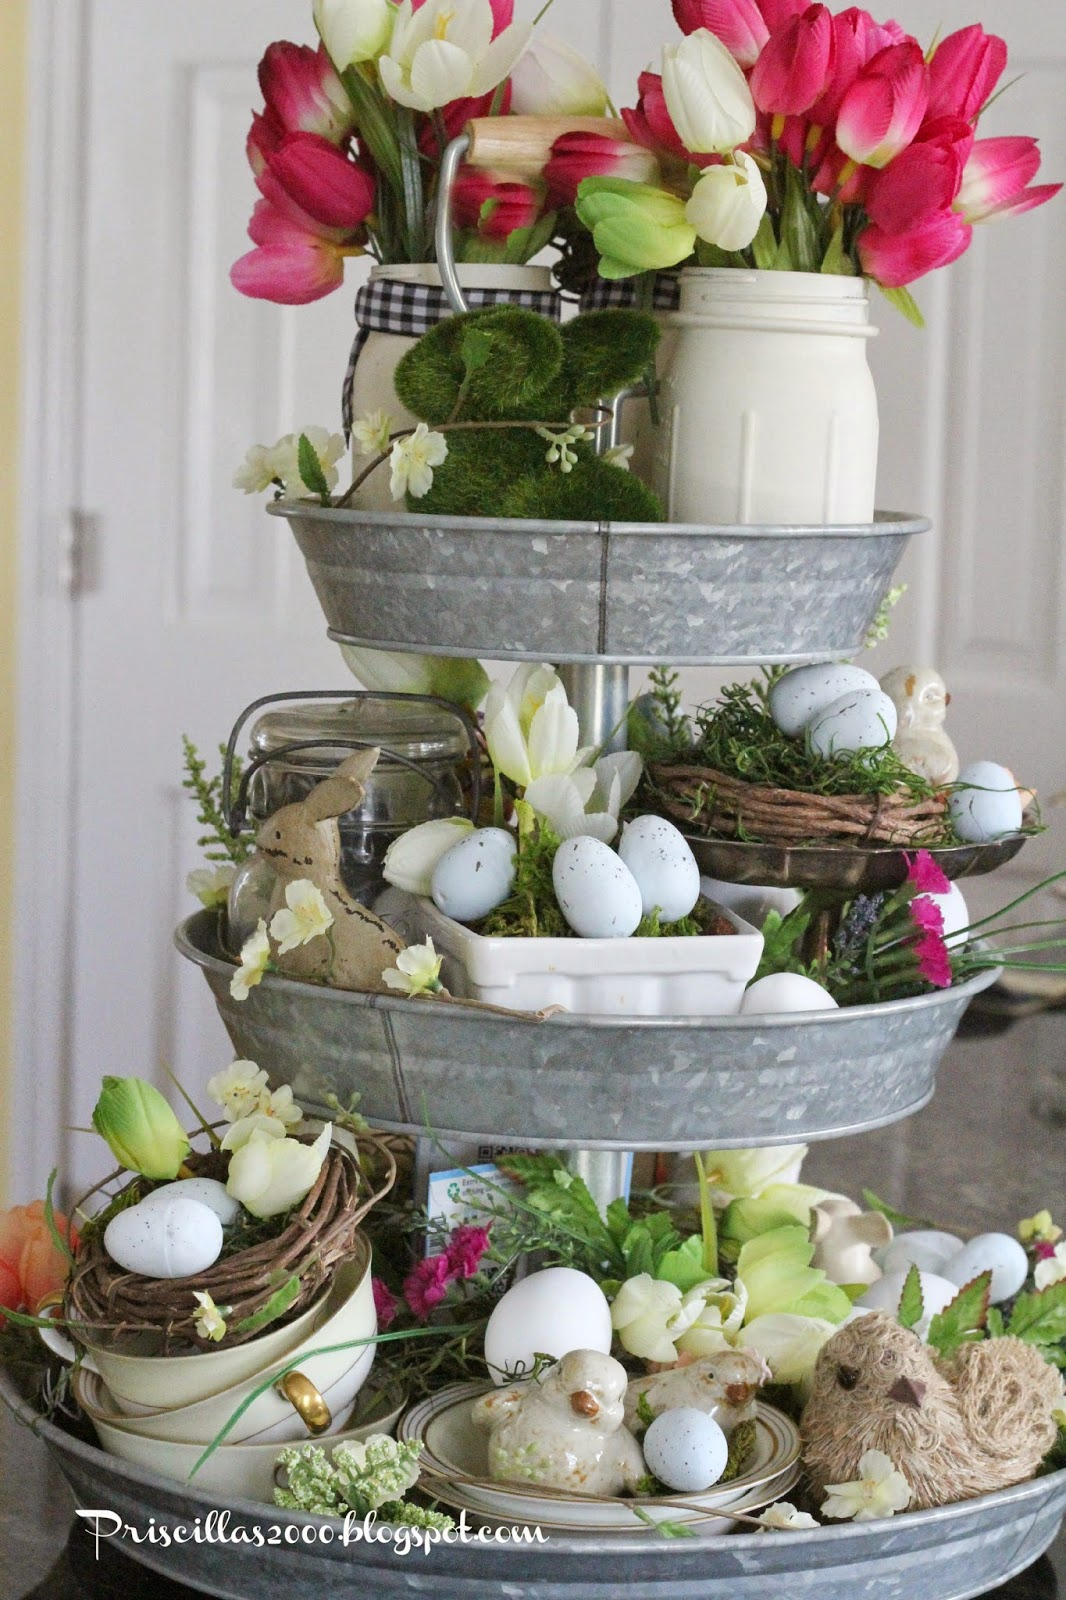 3 Home Decor Trends For Spring Brittany Stager: 20 Rustic Easter Decorations Bringing A Farmhouse Appeal